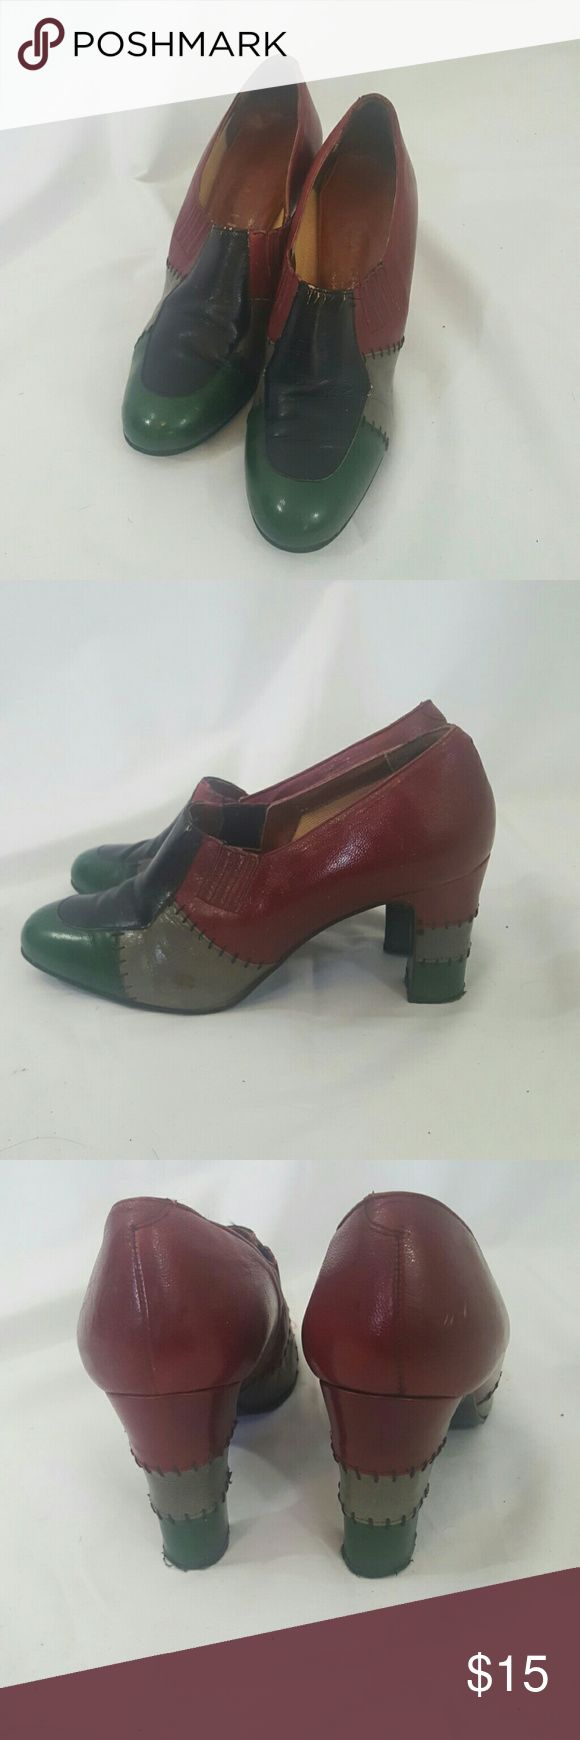 Vintage 1960s Mod Loafer Colorblock Heels 7.5 Good Condition. Amazonf shoes. These are great and quite the statent.  Green, black, gray, and maroon. Even the syacked heels are multicolored. They show some minor wear and incidental scuffing. True to Size  Label Magceli Size 7.5 Heel Height 3 inches ModCloth Shoes Heels